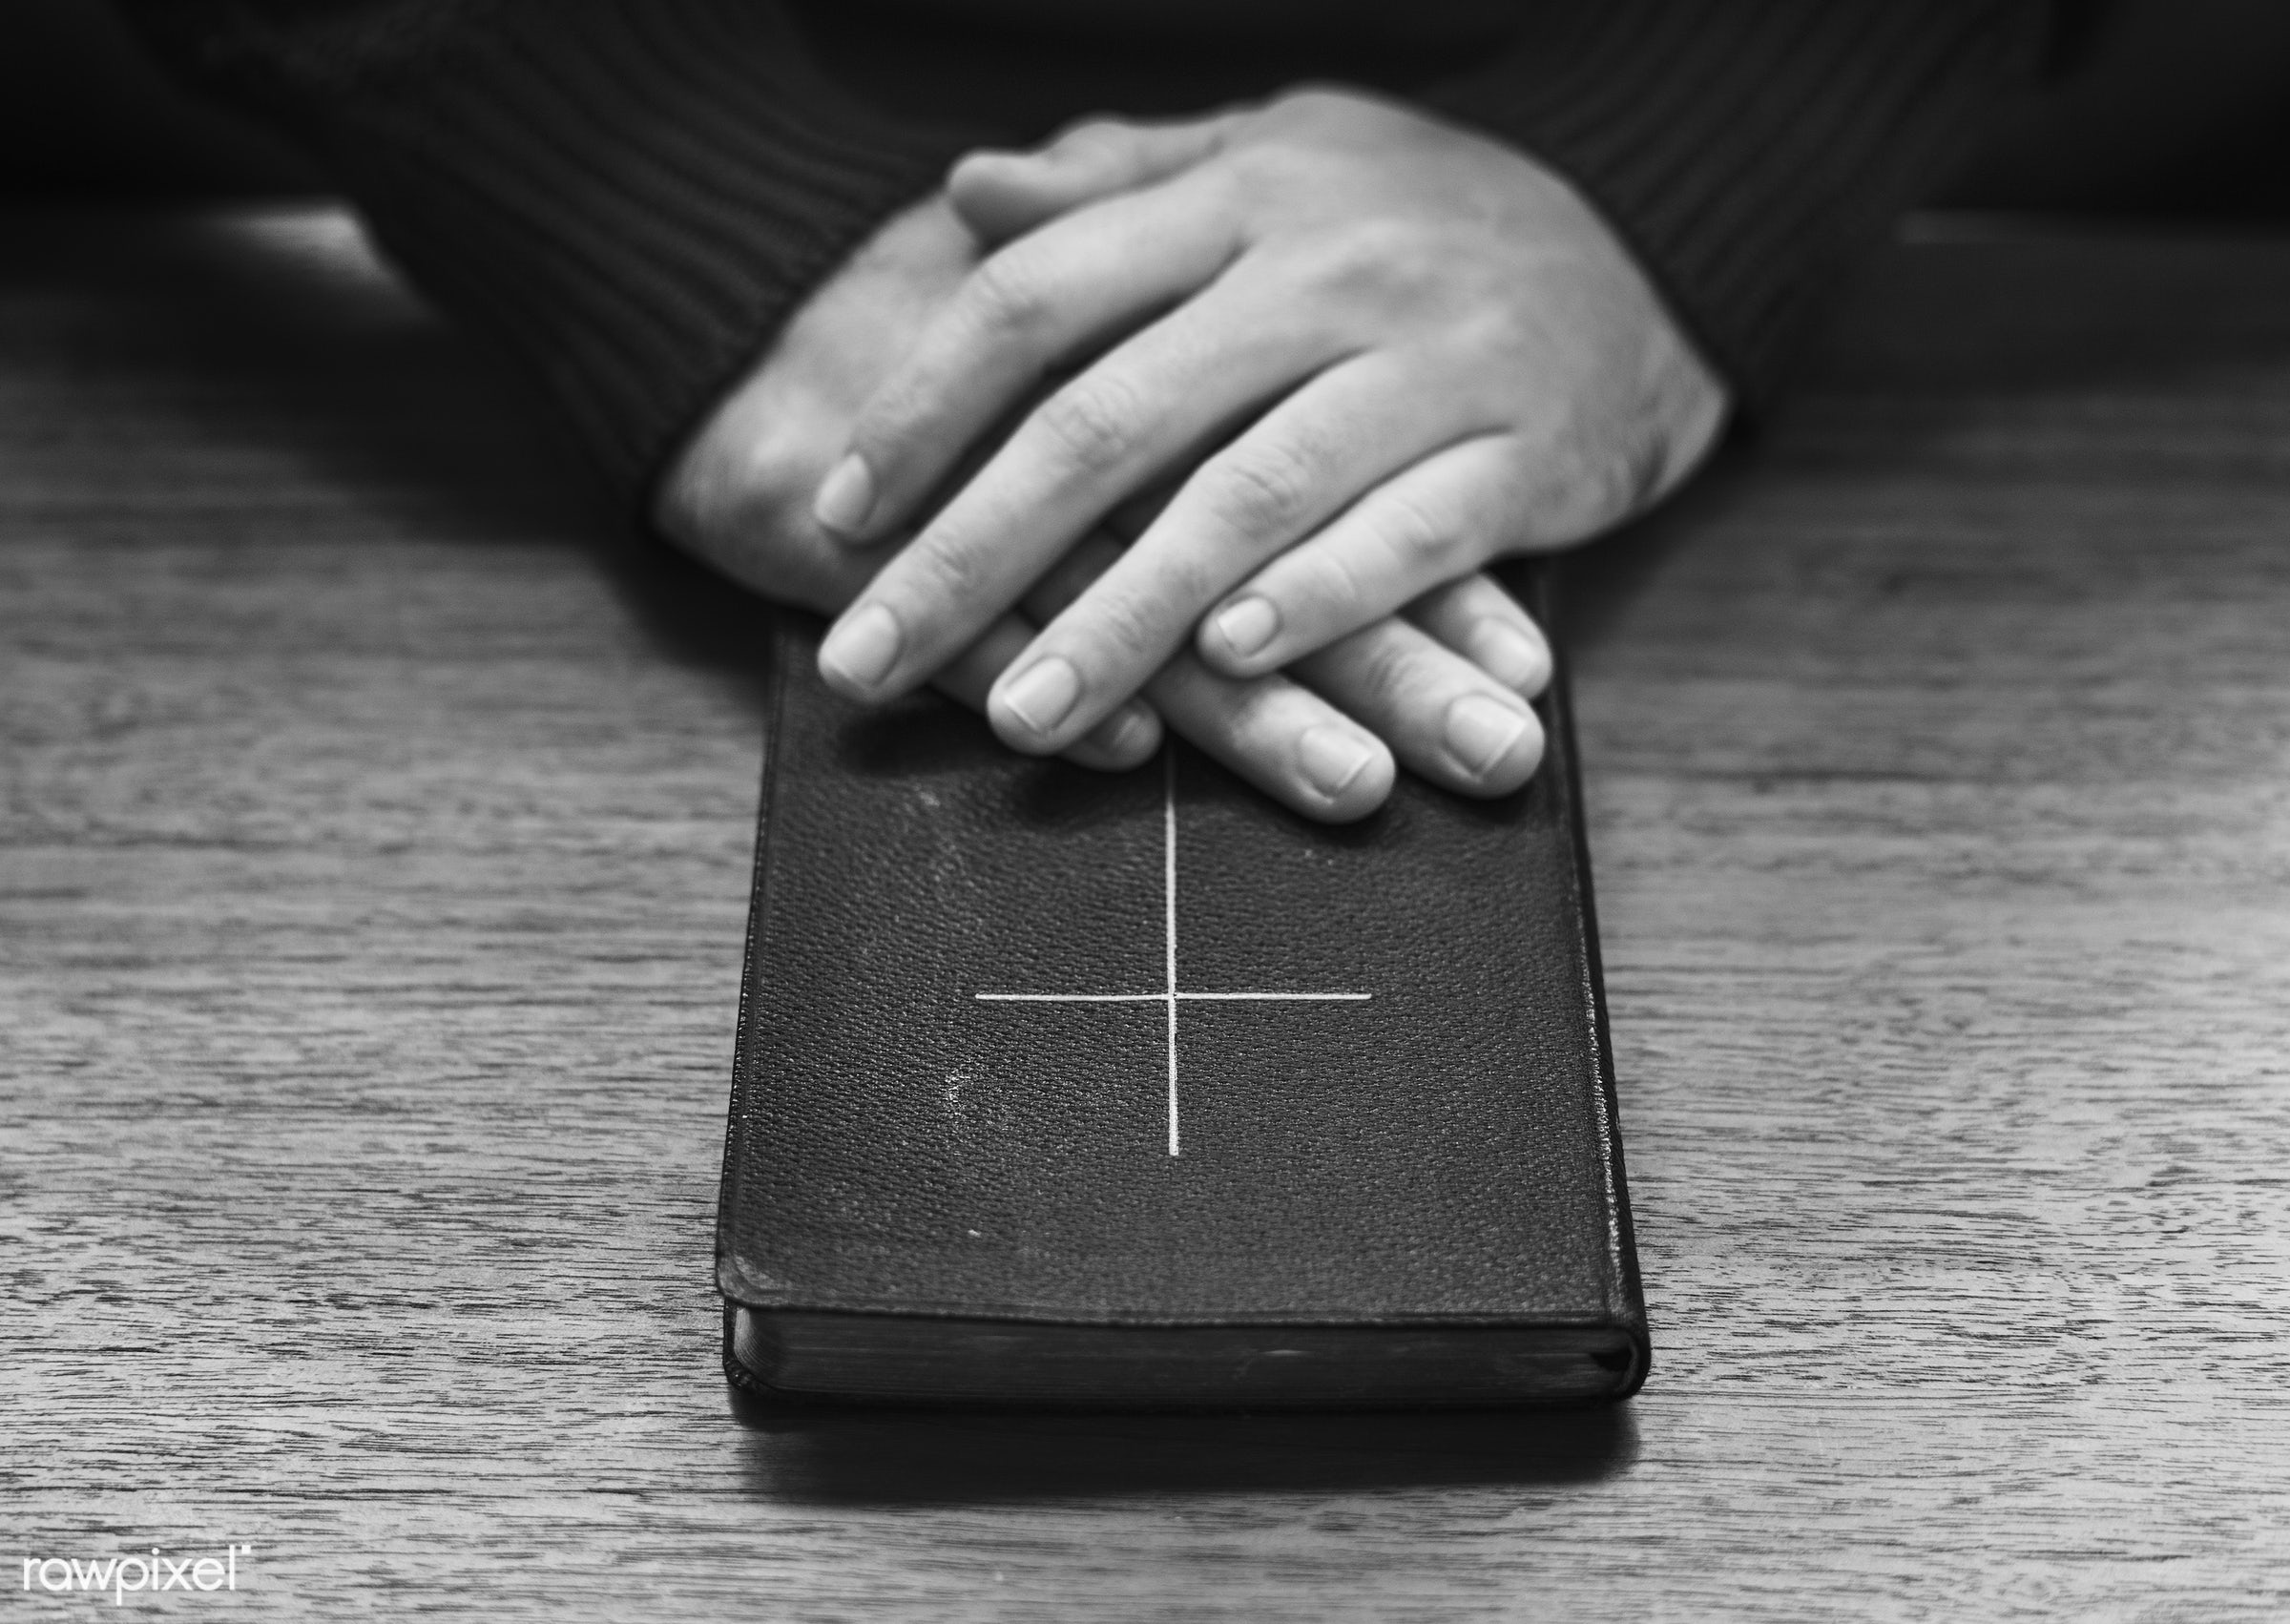 Hands over bible on wooden table - belief, believe, bible, black and white, book, bw, catholic, christian, christianity,...